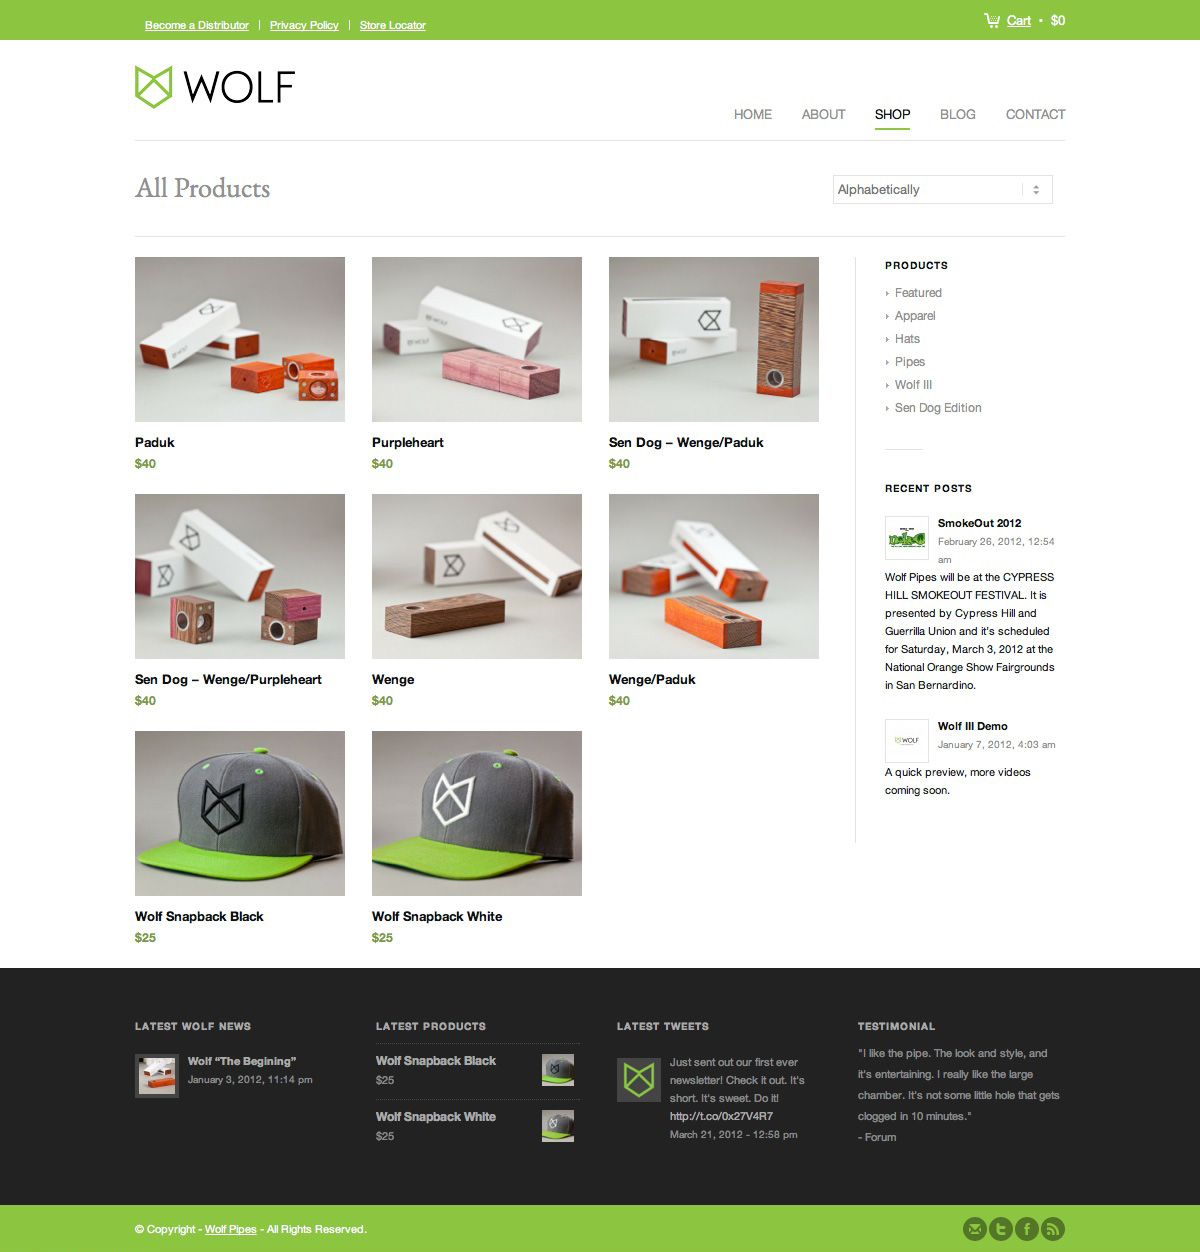 Wolf Pipes Web Design